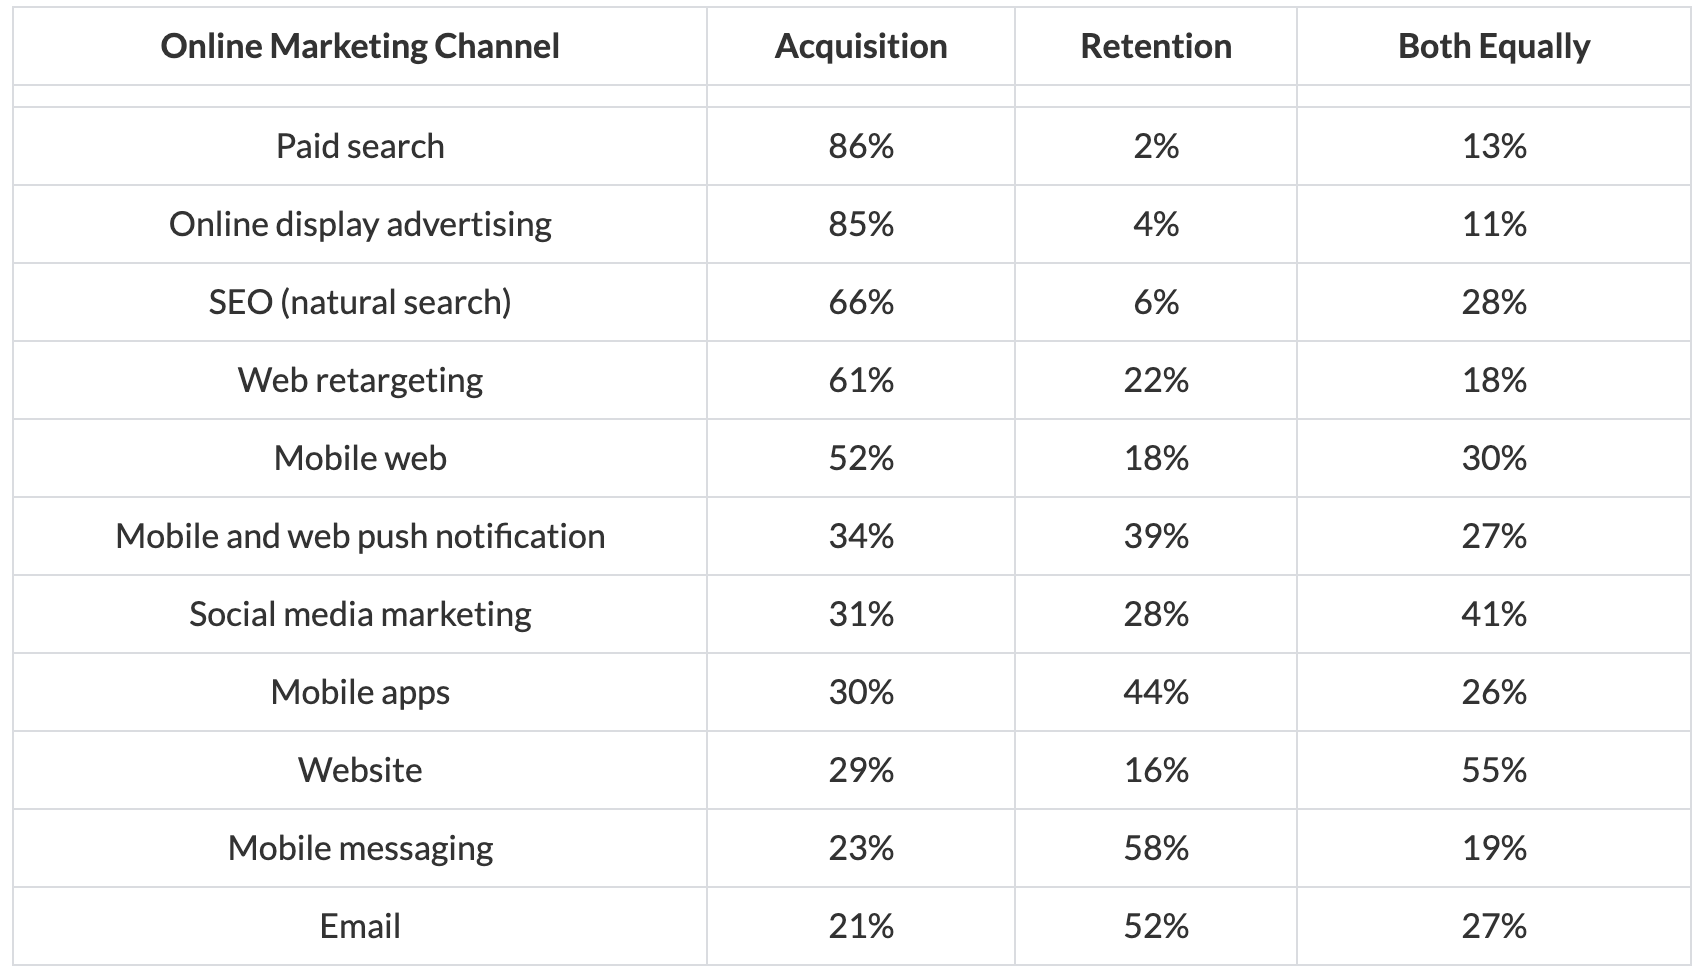 Marketing channels for client acquisition and retention